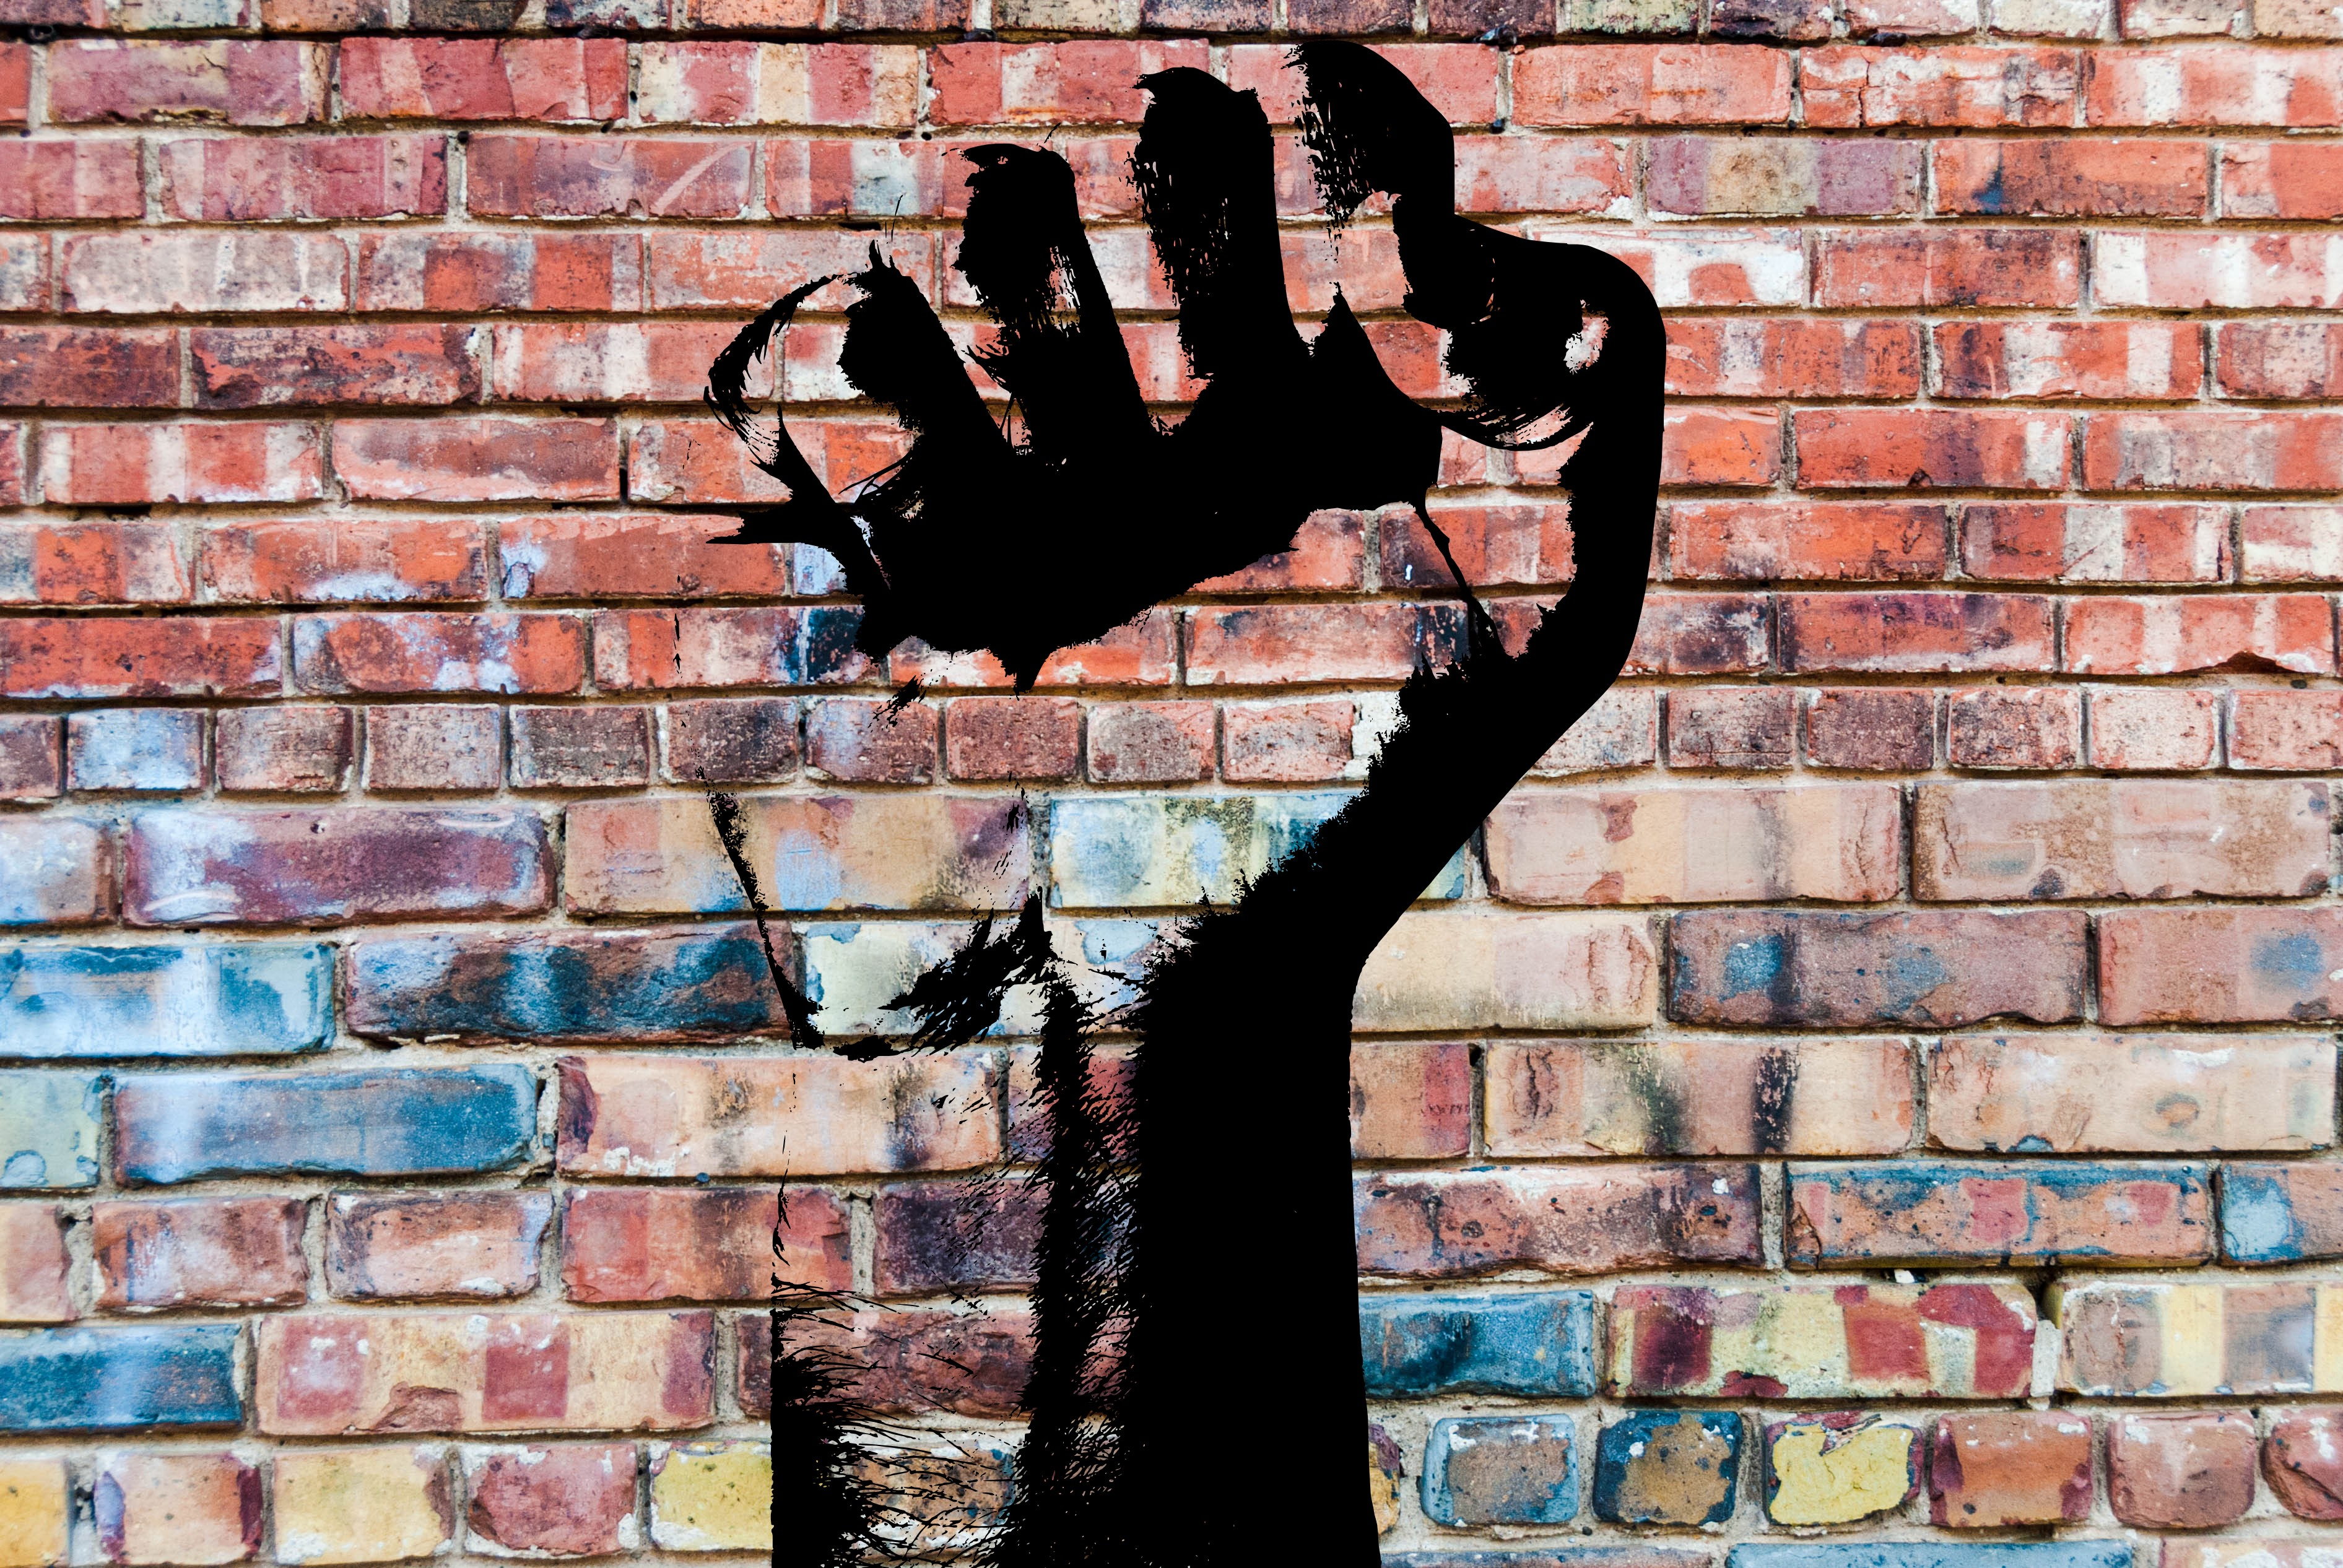 A painted activism power fist in black ink on a multicolored brick wall